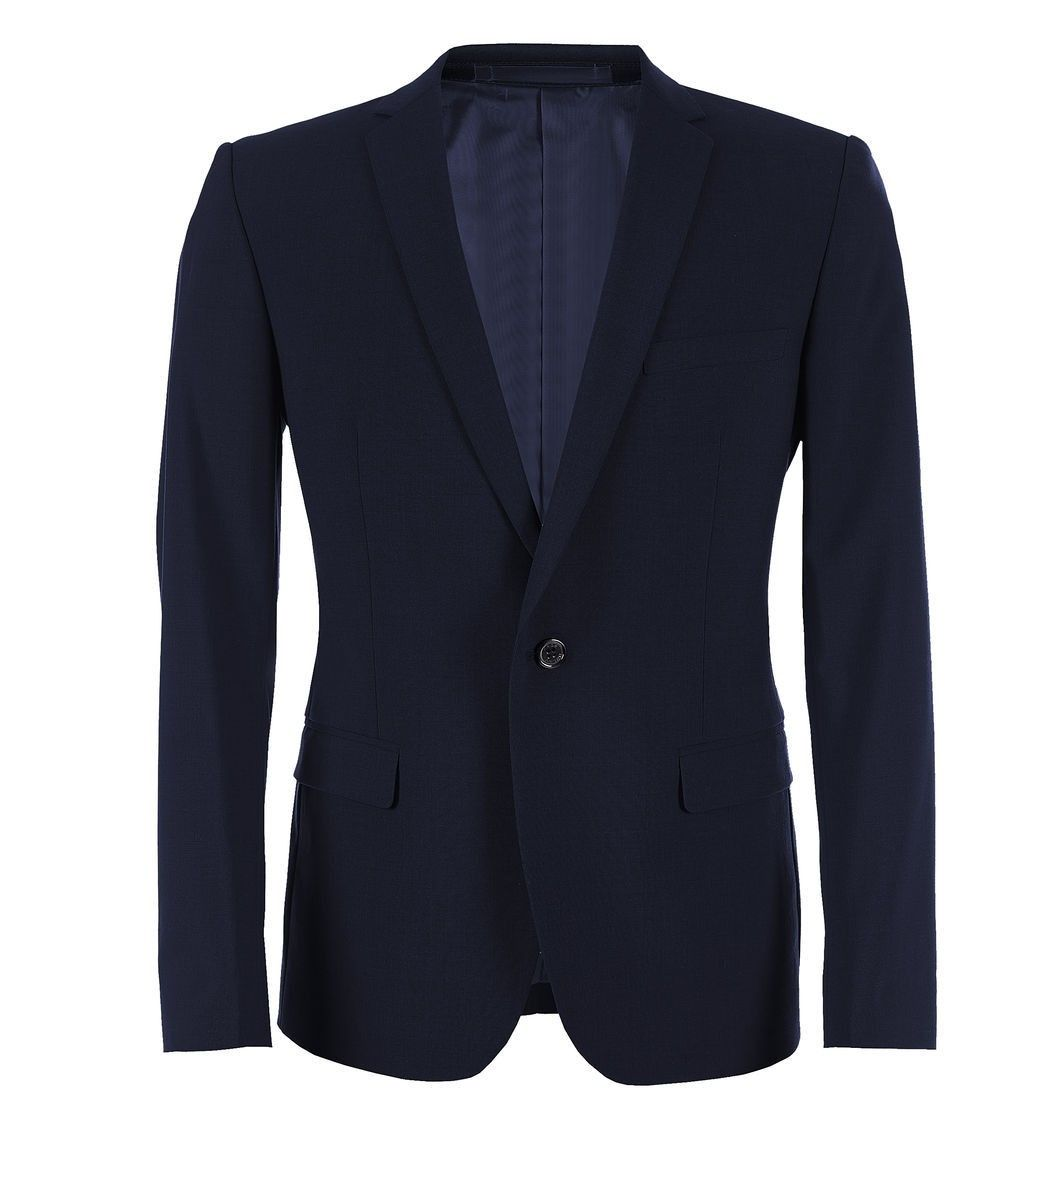 Main: 50% Wool, 47% Polyester, 3% Lycra Lining: 100% Polyester  Dry Clean Only